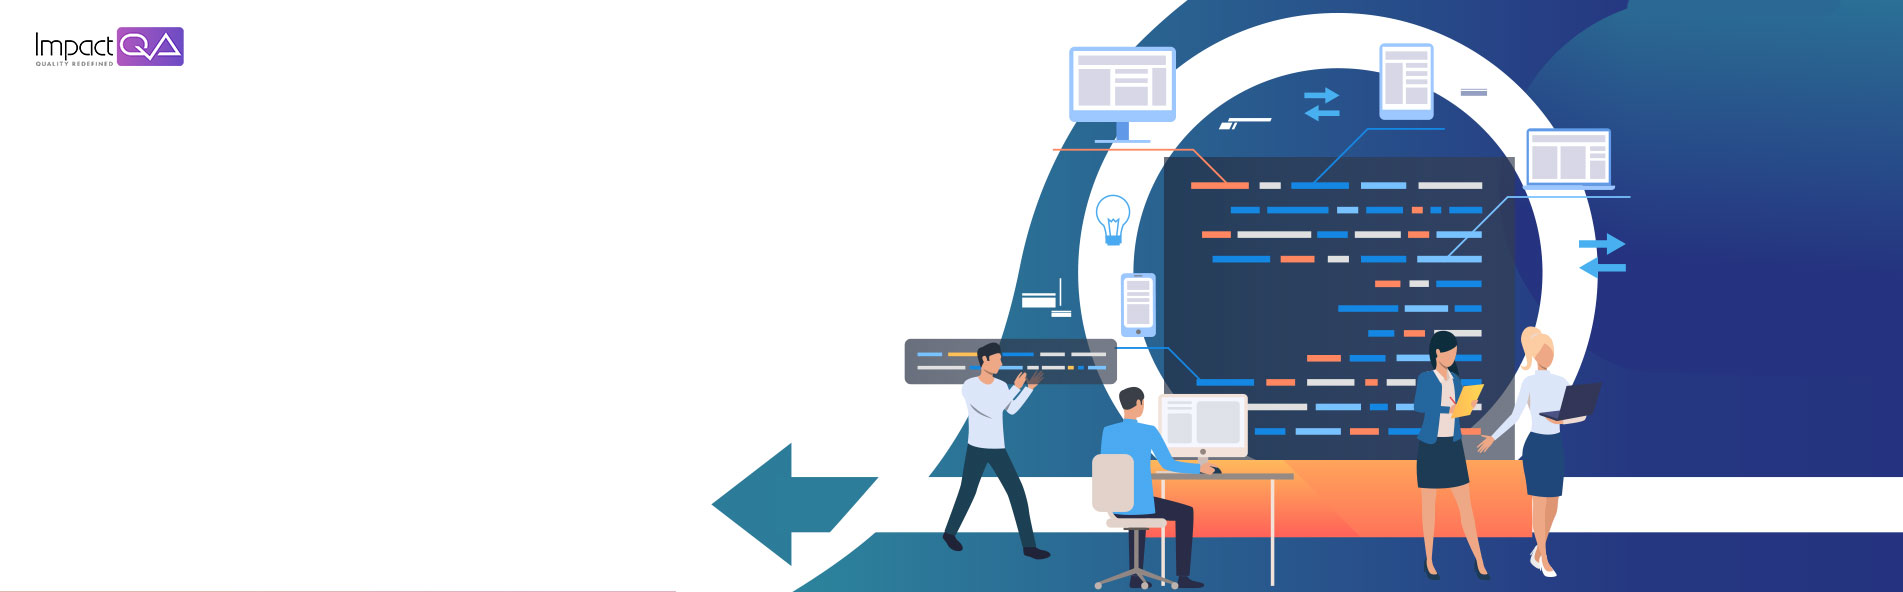 Top 7 Agile Testing Trends to Look Out in 2021